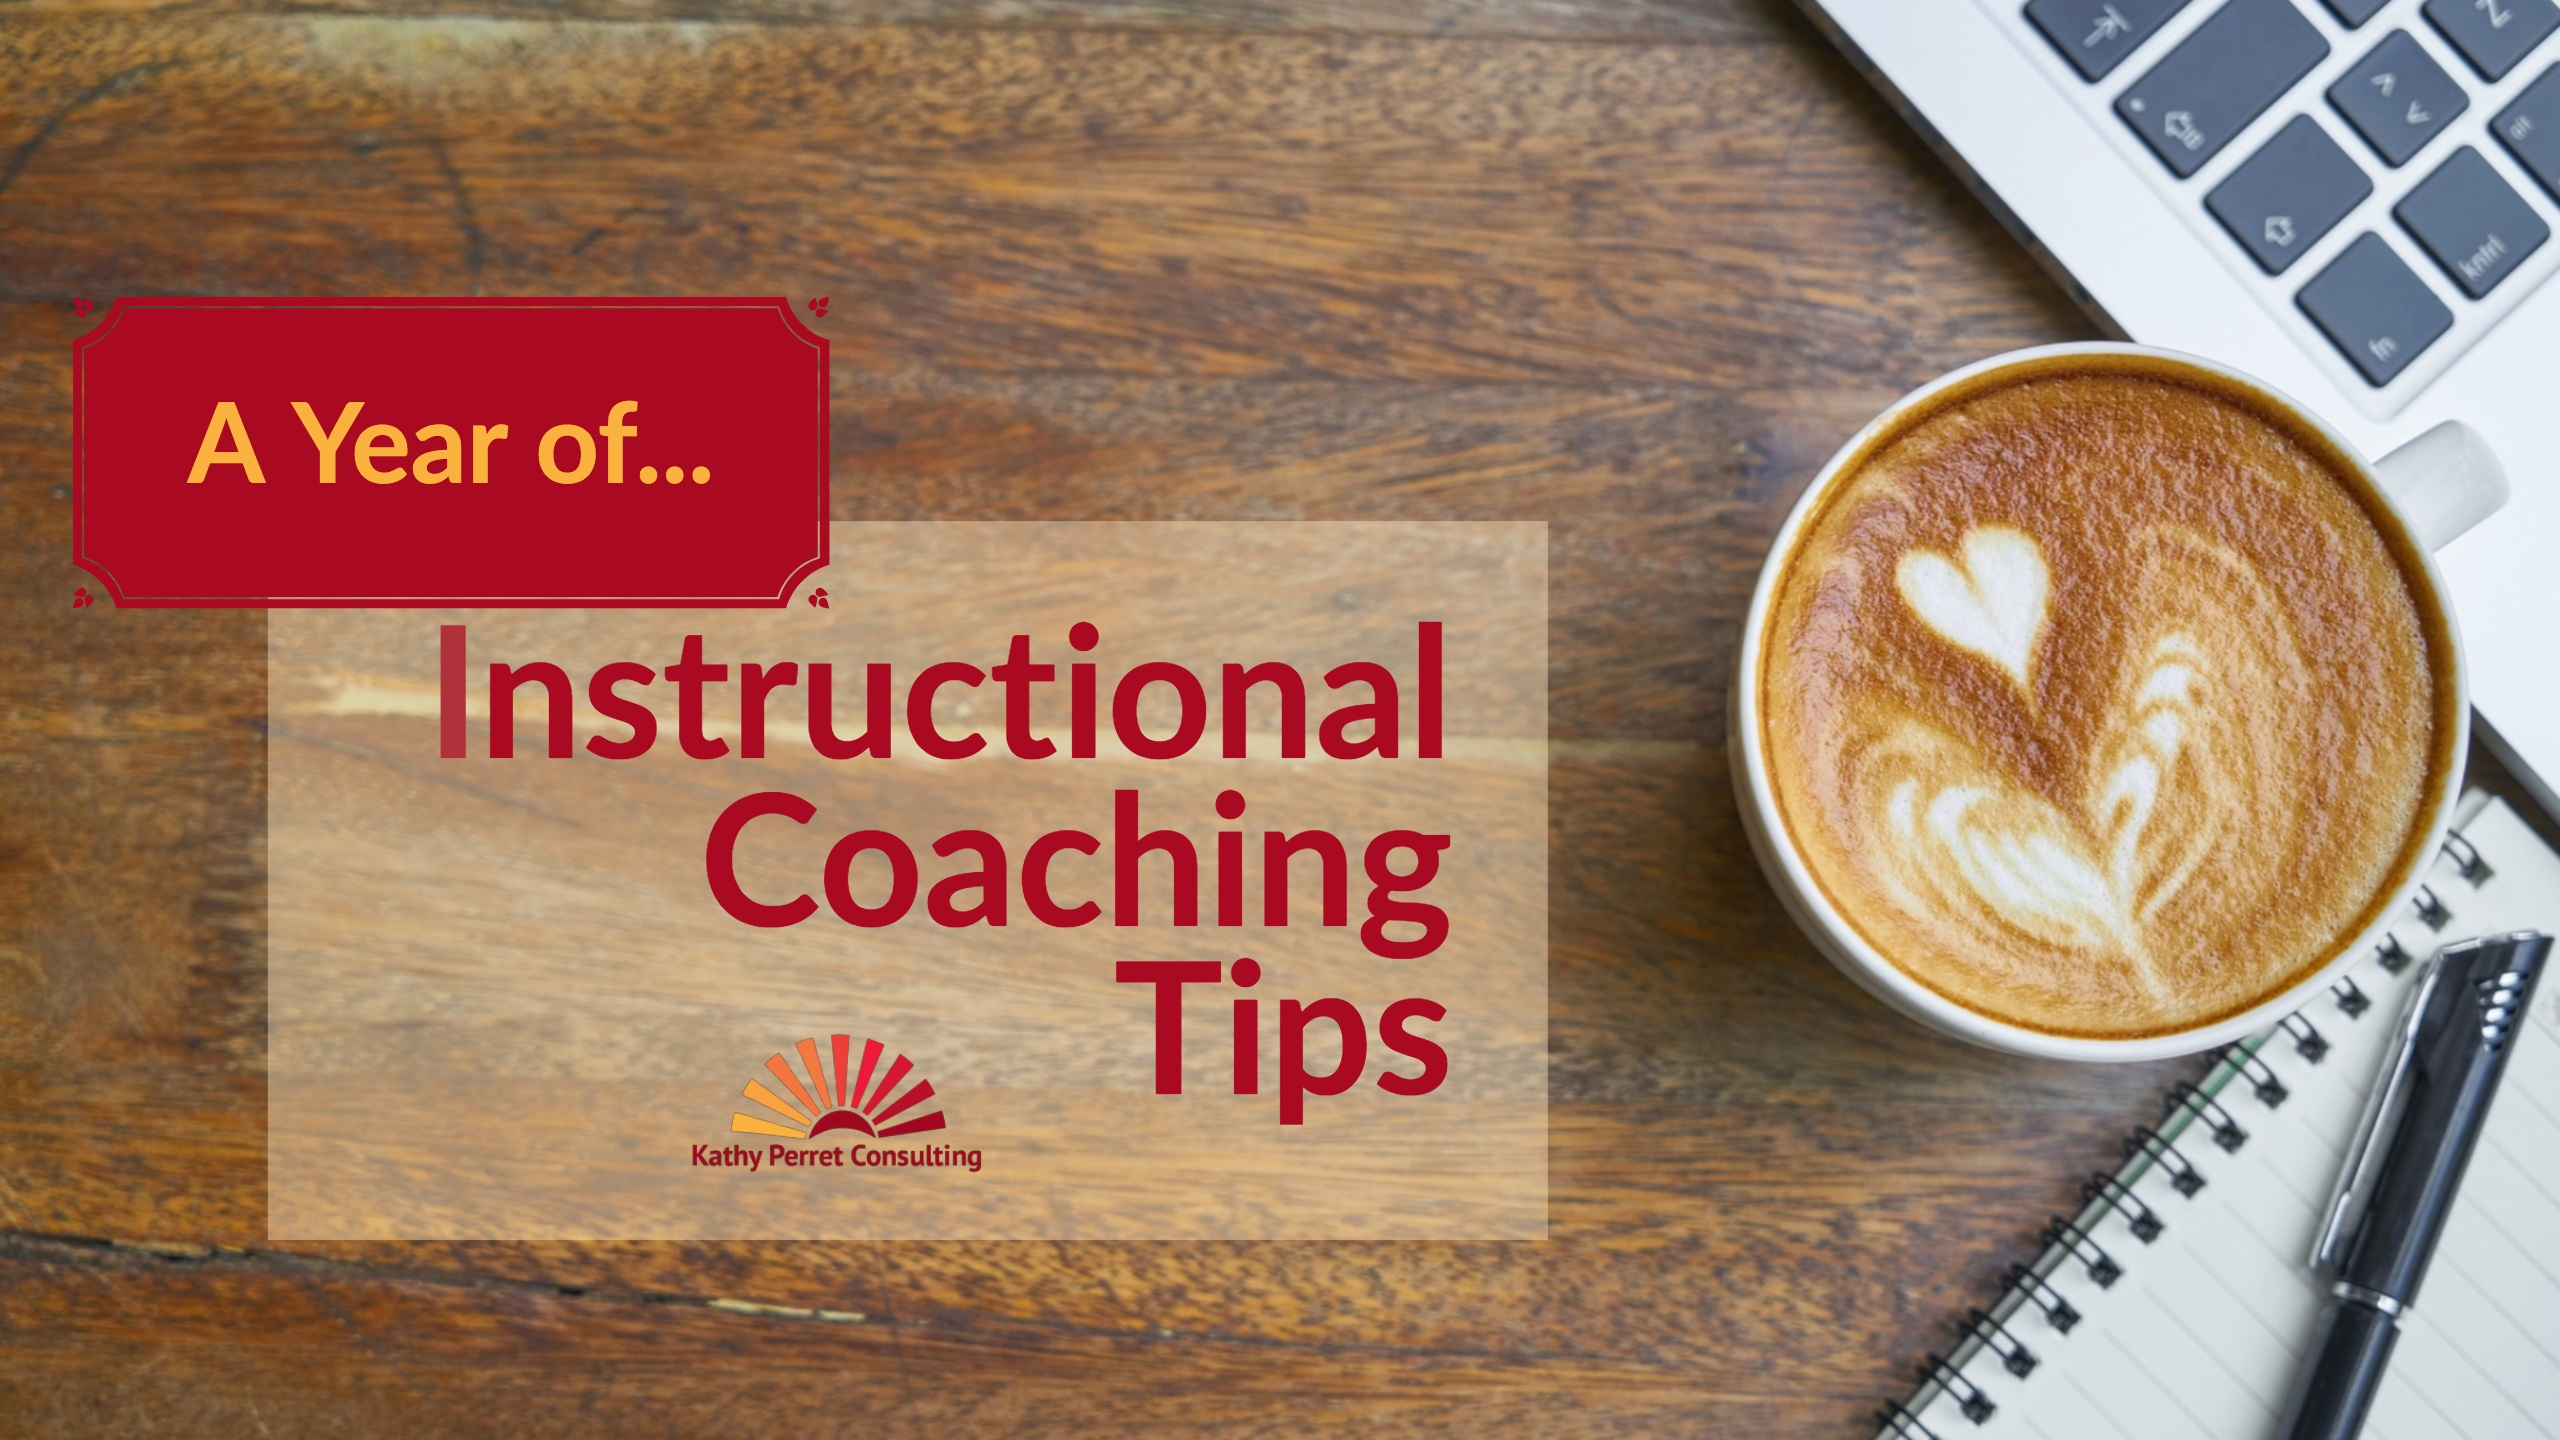 A Year Of Instructional Coaching Tips Kathy Perret